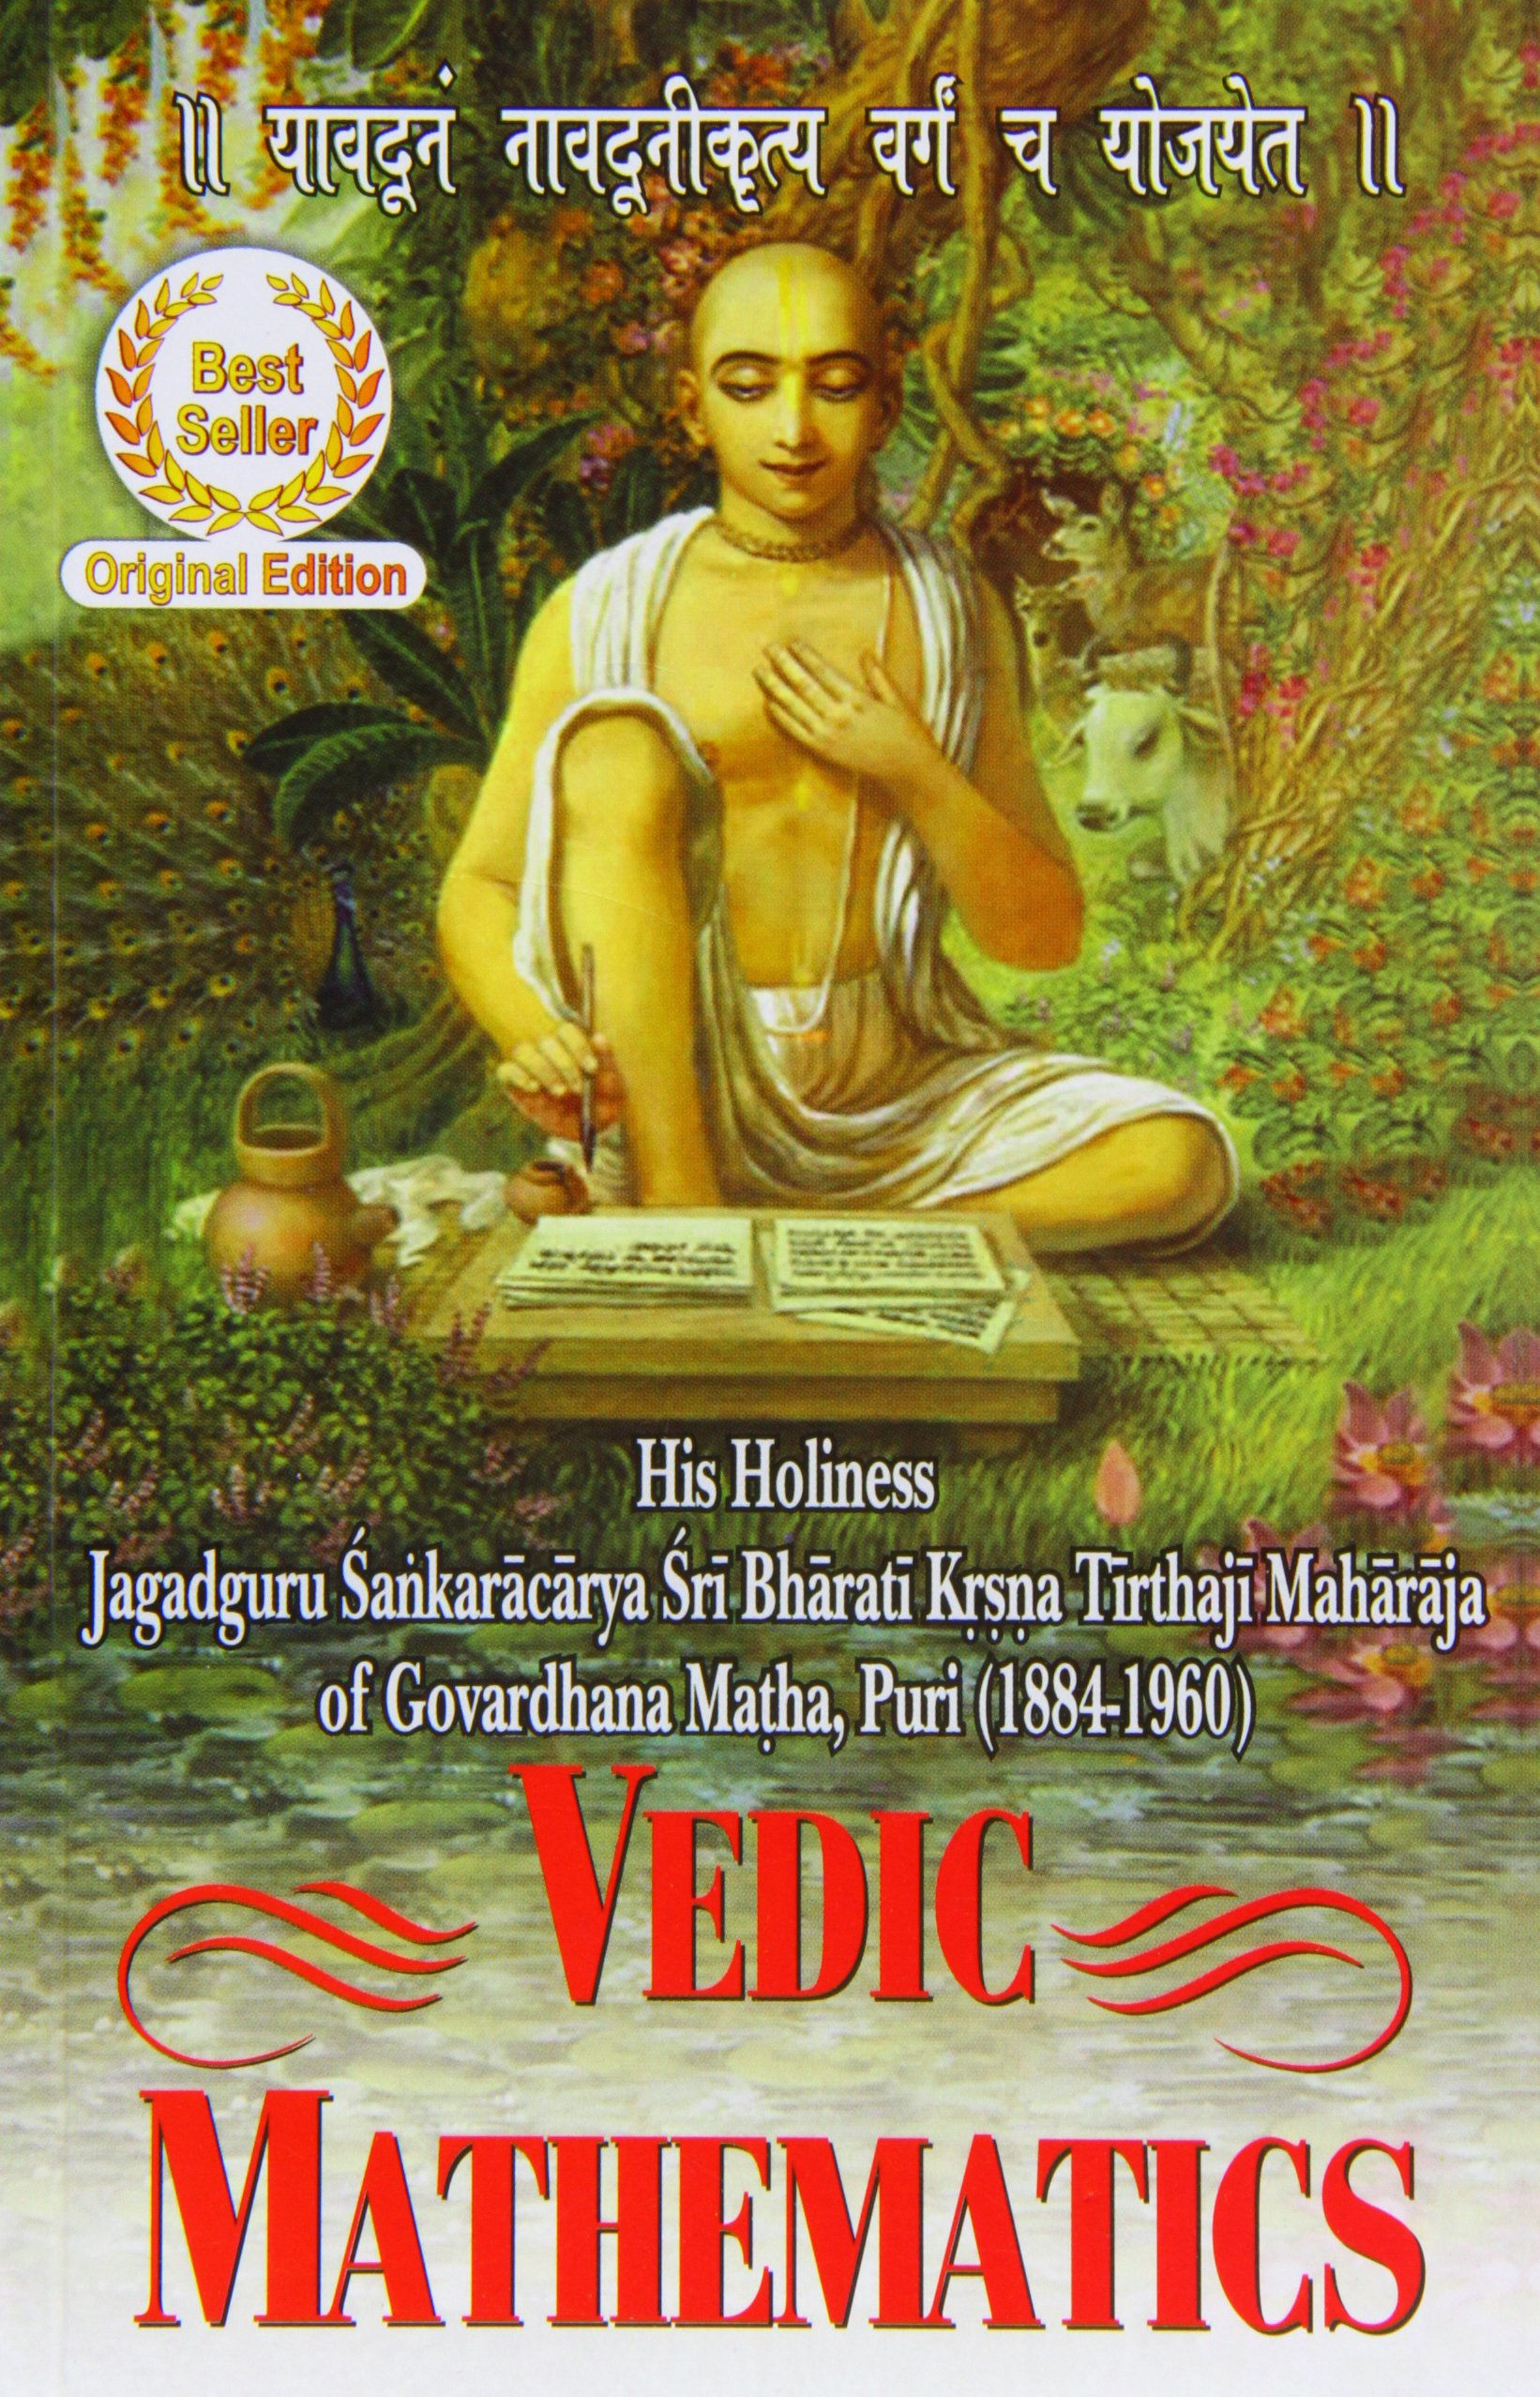 complete book of vedic mathematics pdf